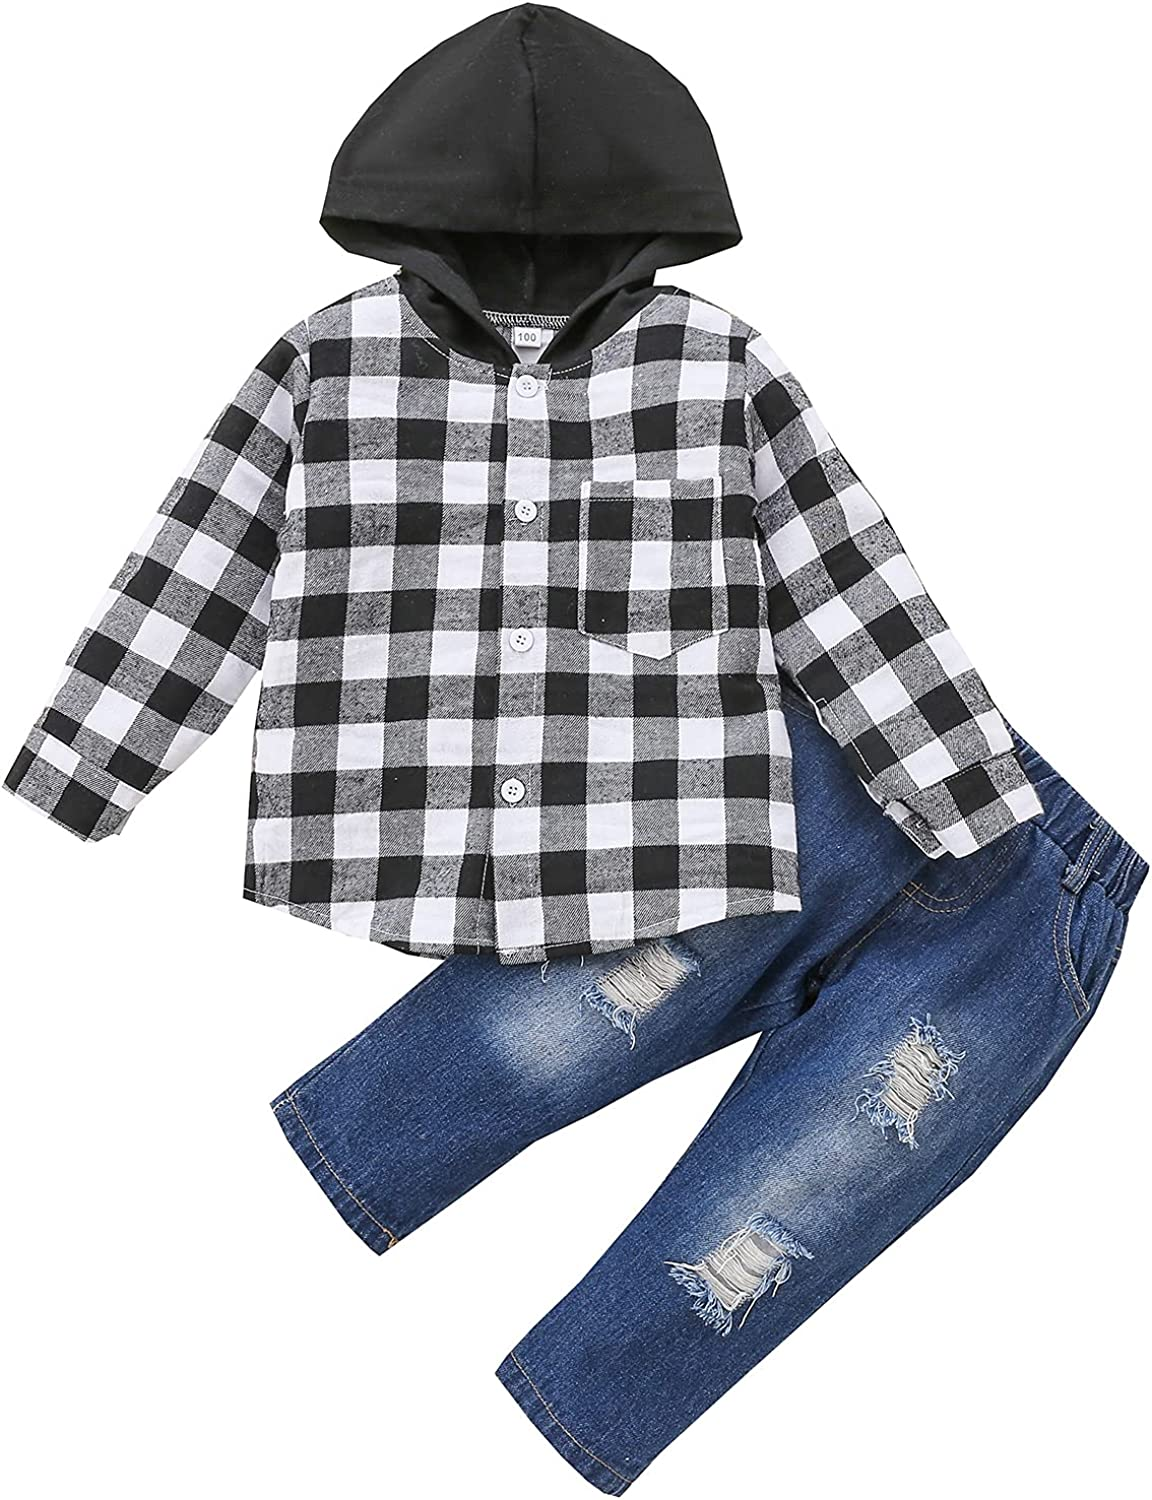 Toddler Baby Boys Plaid Hoodie Top Long Sleeve Button Down Tops Hooded Jacket Ripped Jeans Fall Winter Clothes Outfits